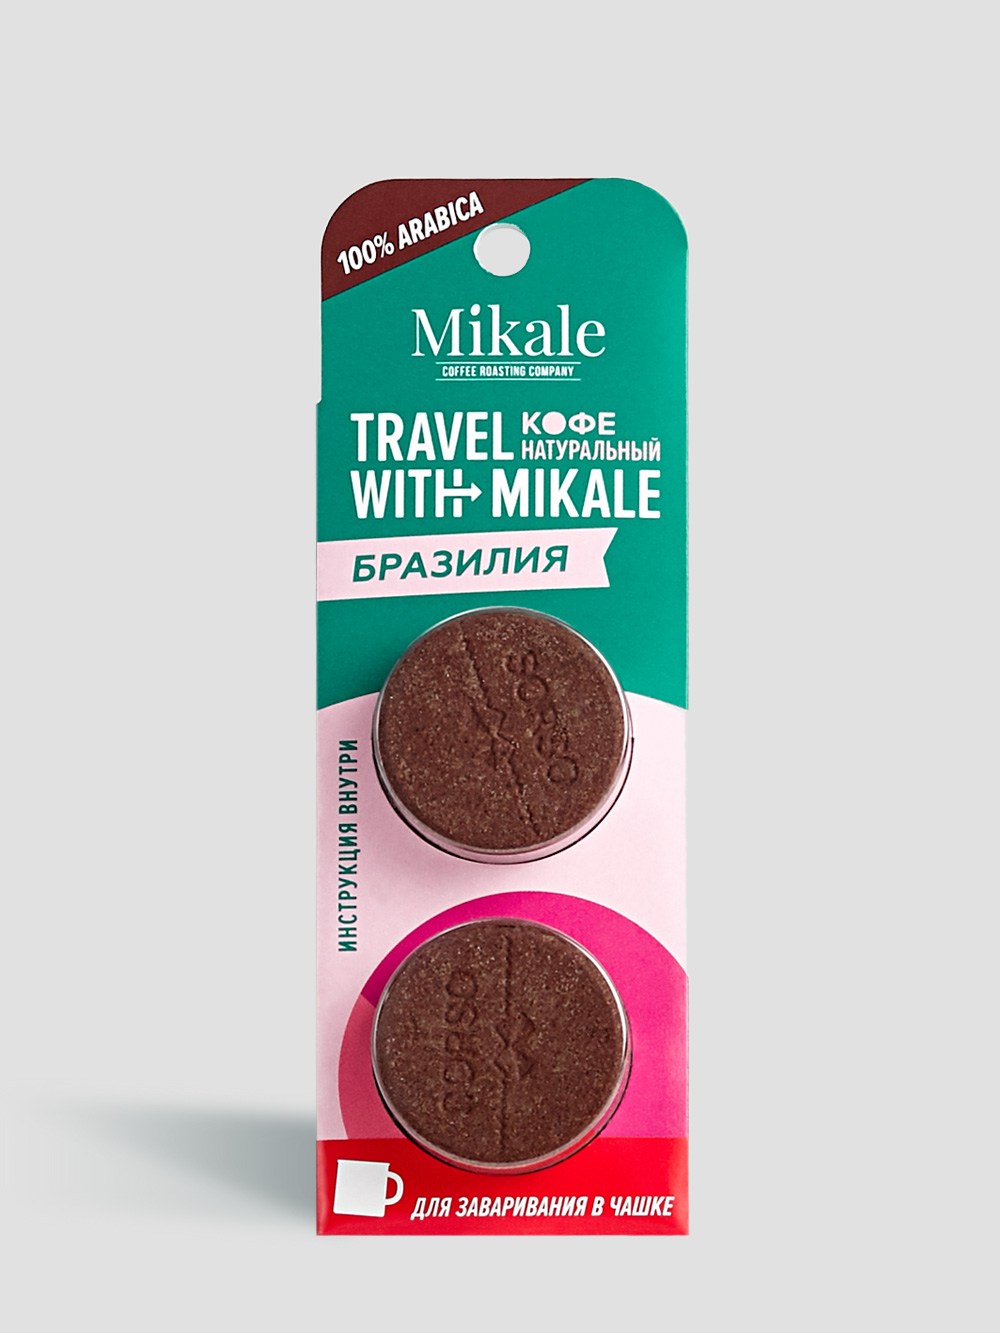 TRAVEL WITH MIKALE